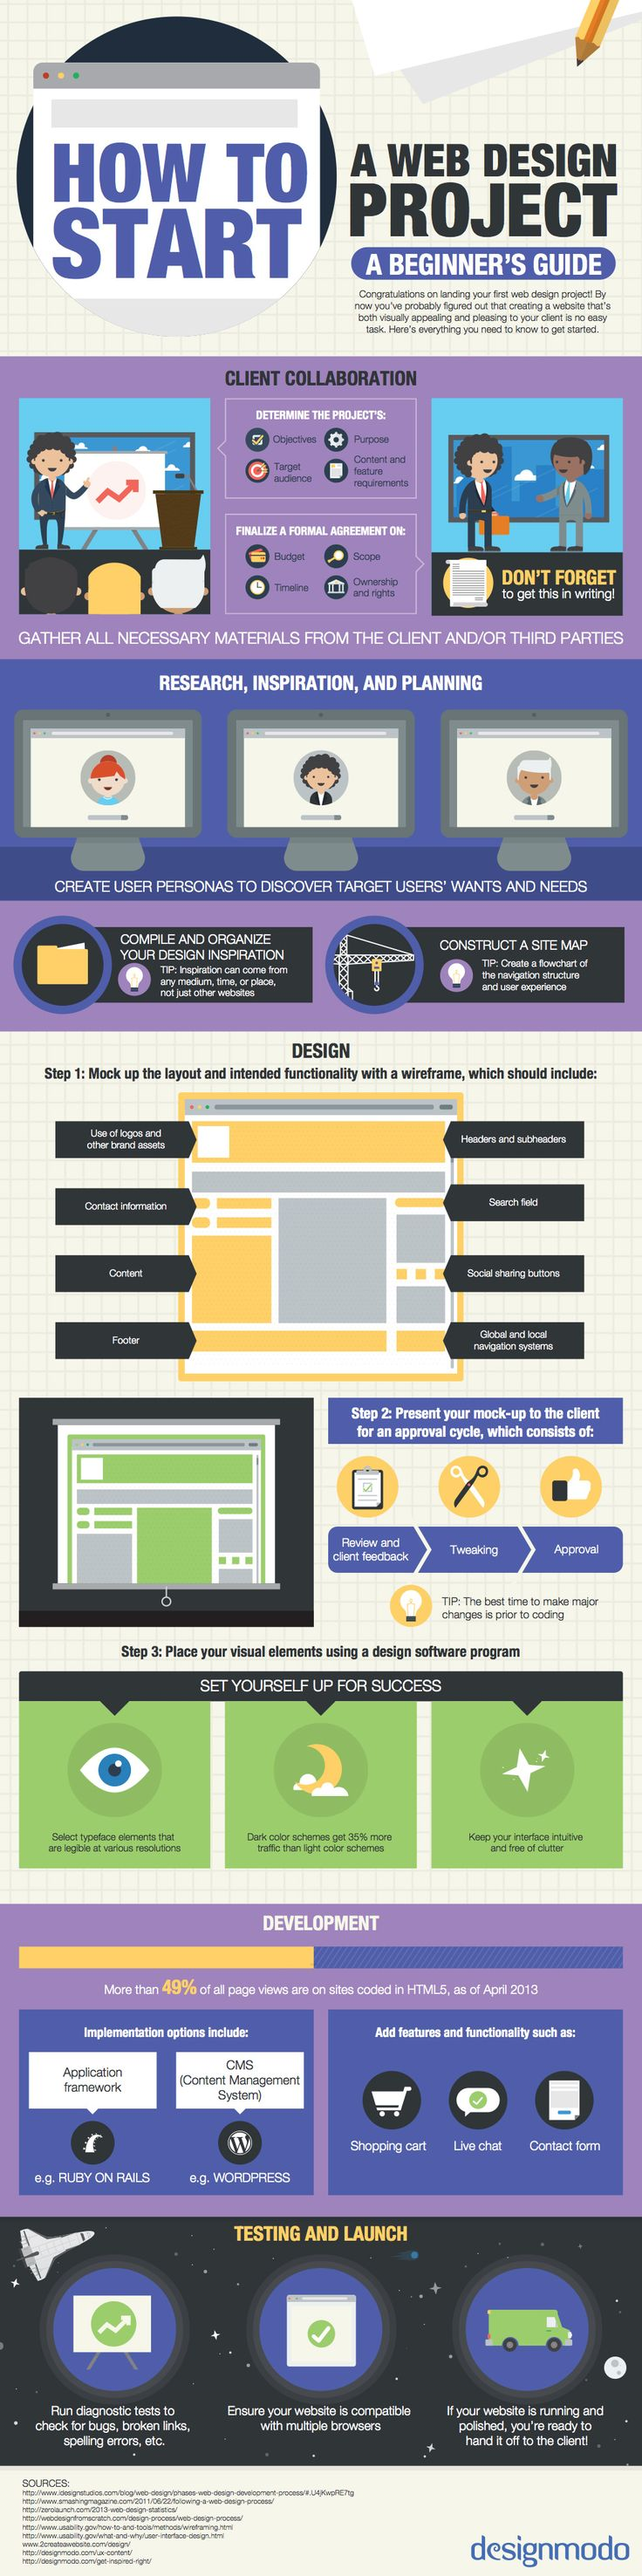 How to Start a Web Design Project [Infographic]